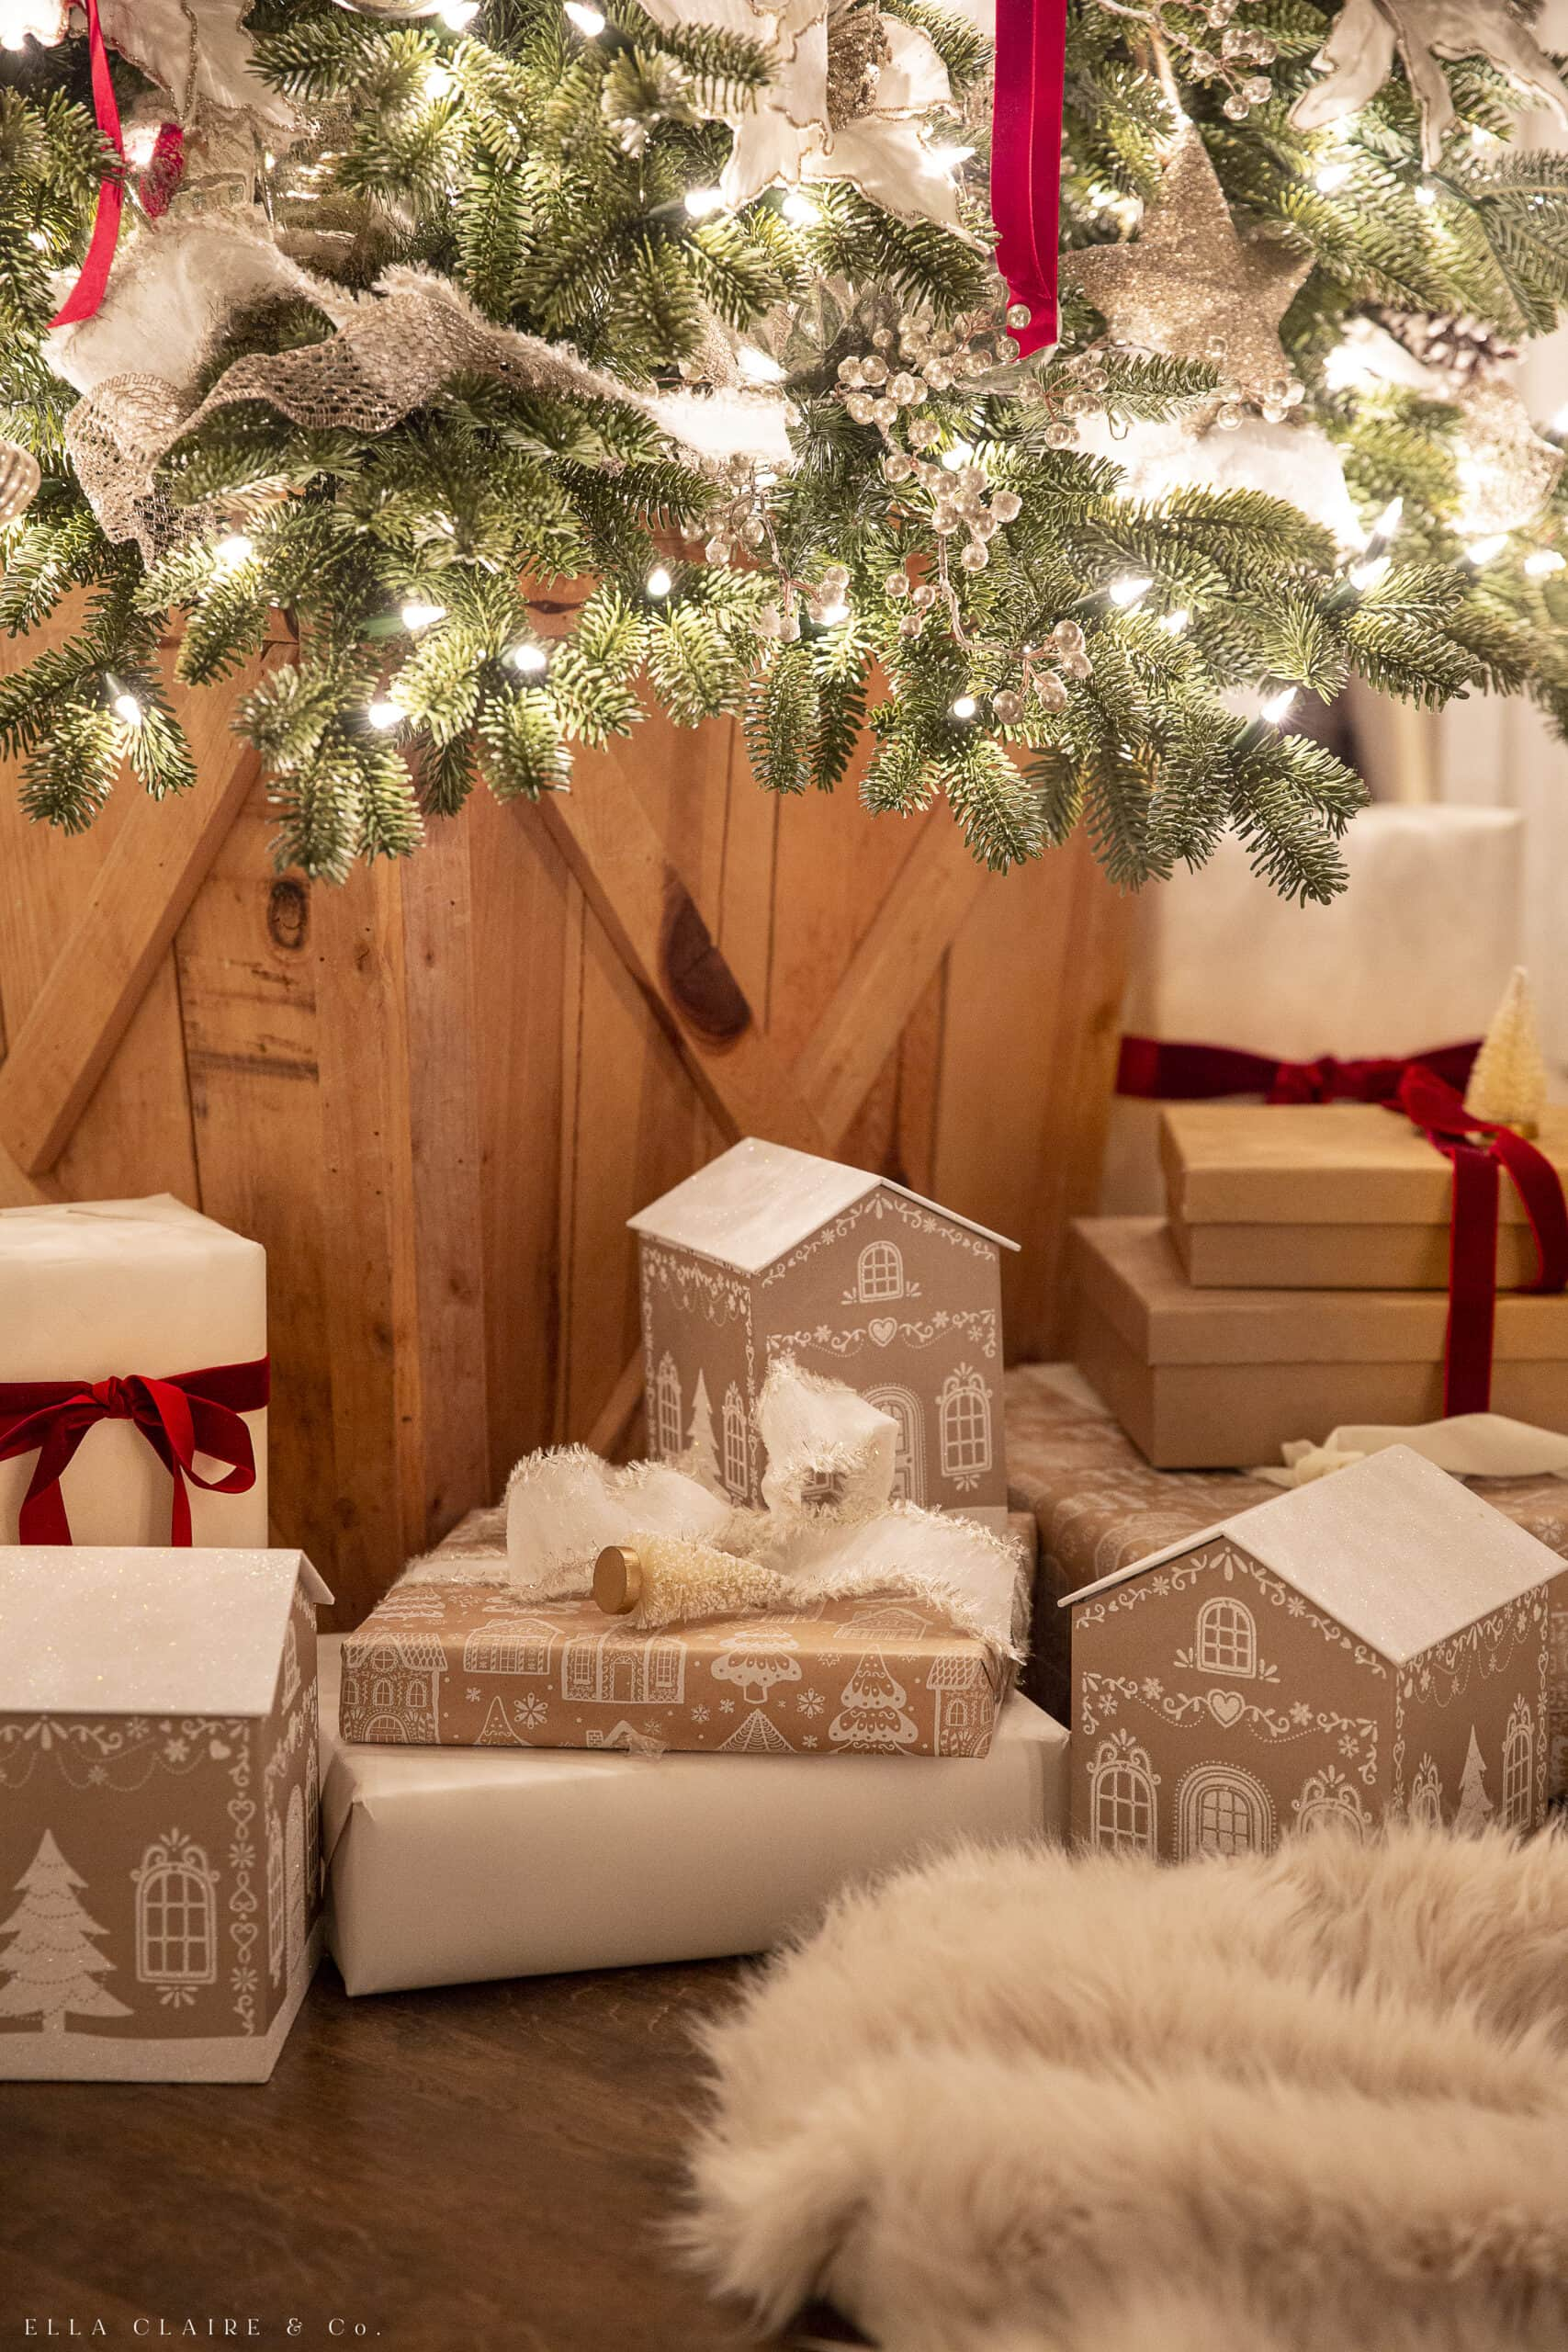 gingerbread gift wrapping and boxes under Christmas tree